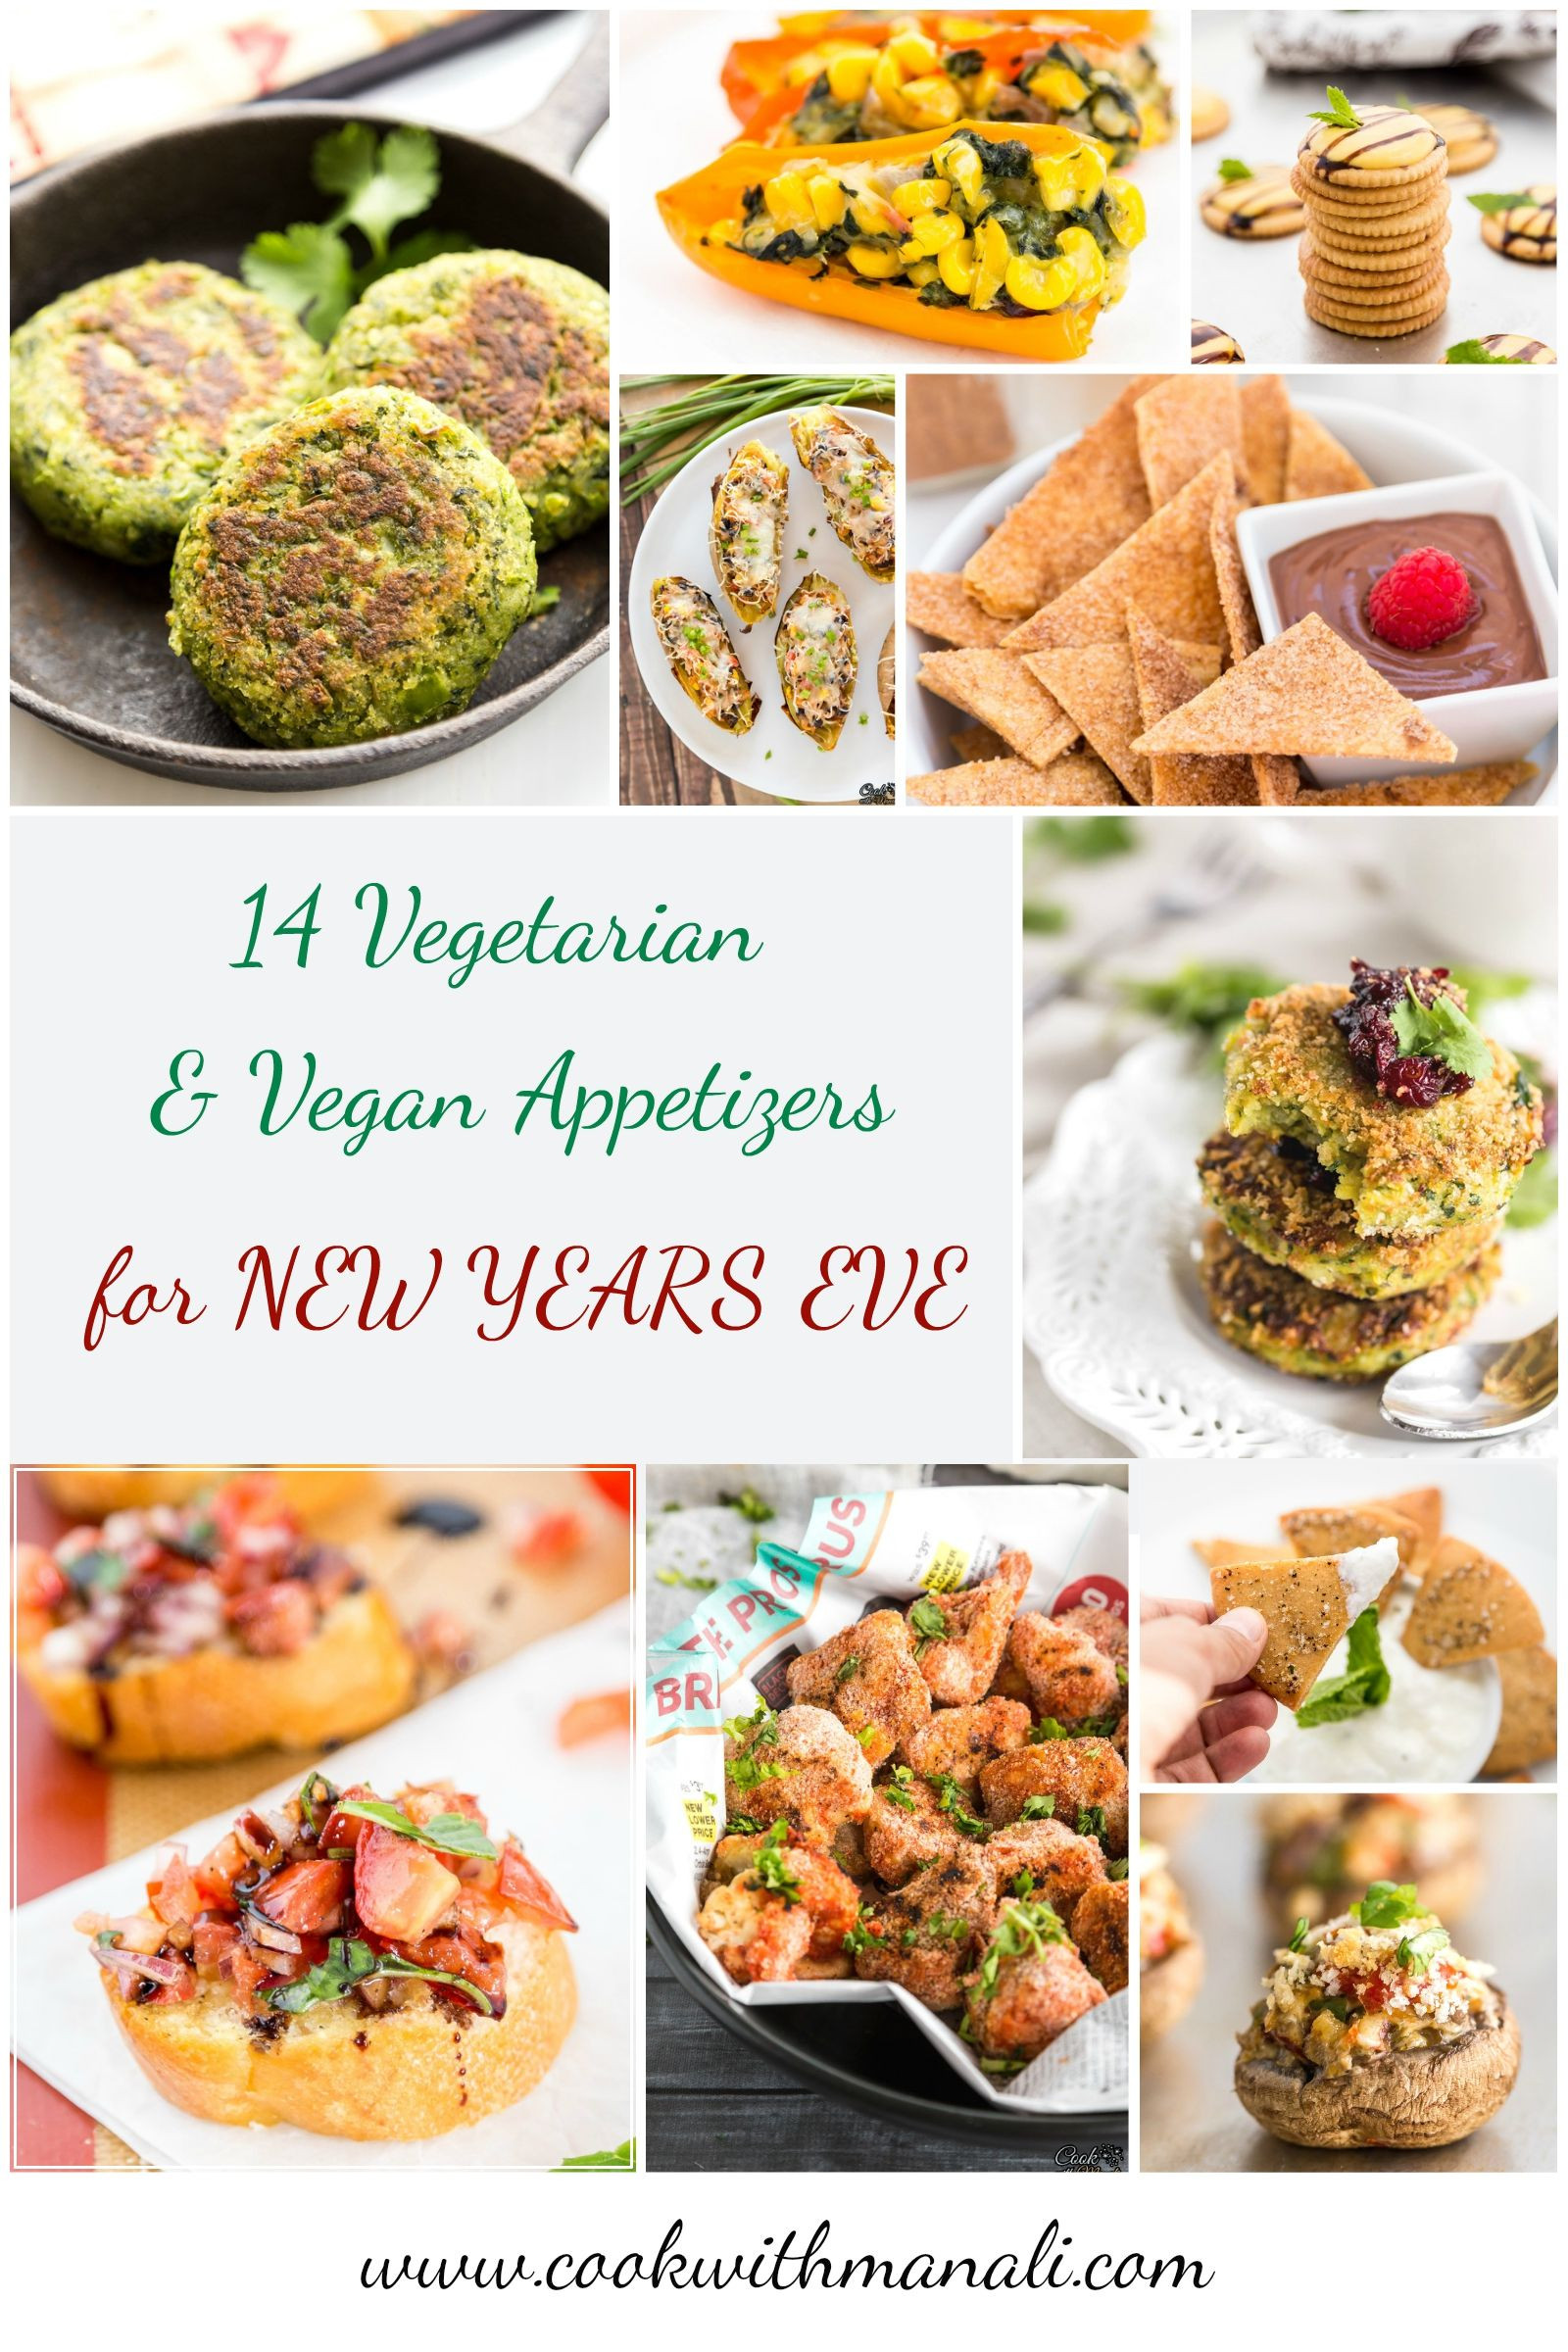 Vegetarian New Year Eve Recipes  14 Ve arian Vegan Appetizers for New Years Eve